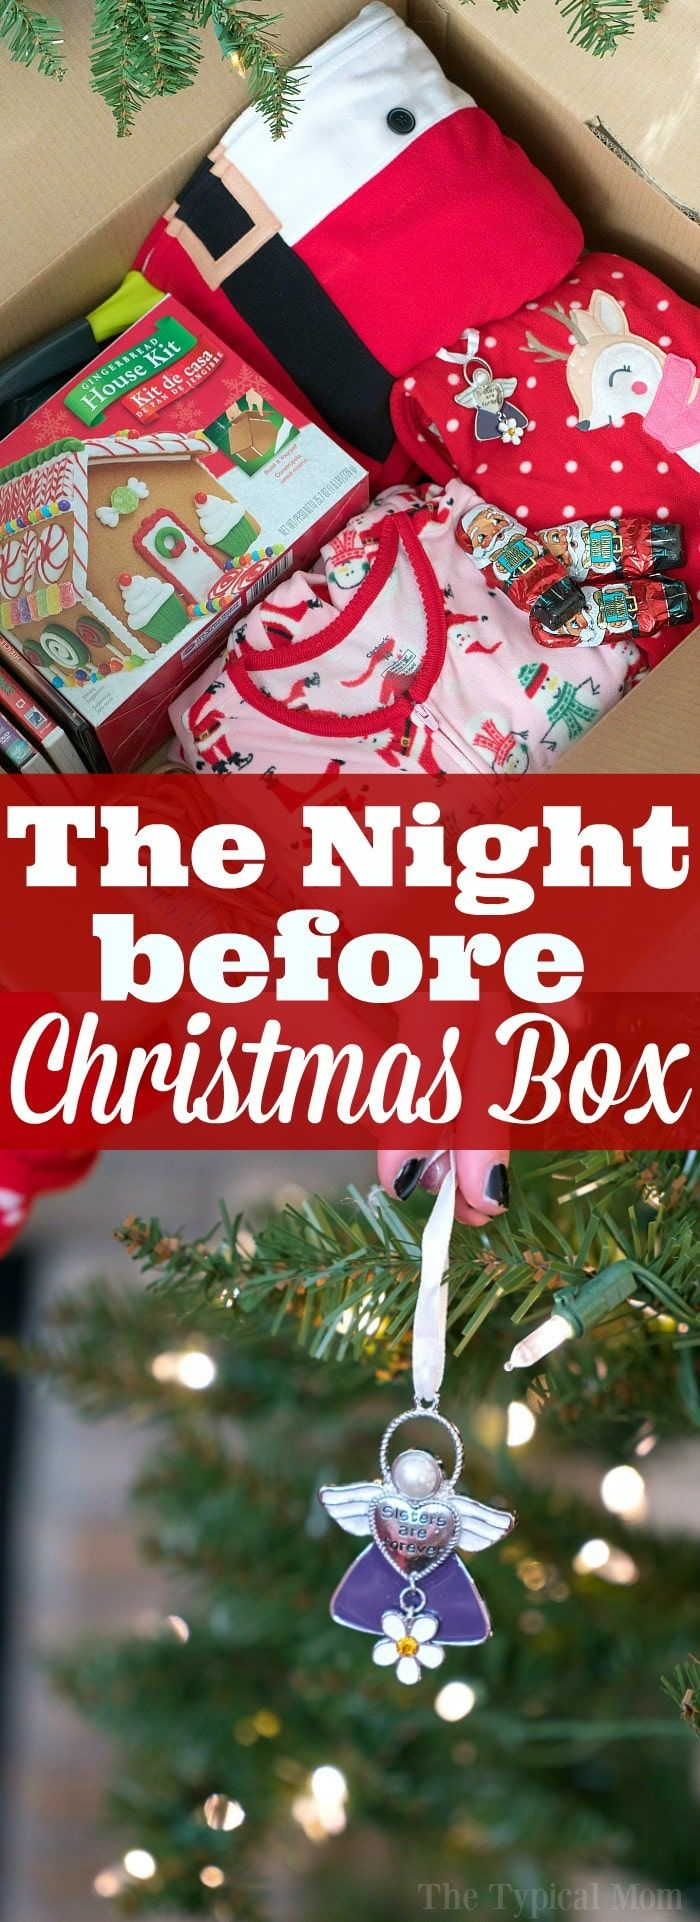 The night before Christmas box tradition is so much fun! Here's how you make one and why my kids look forward to it every year no matter how old they are.